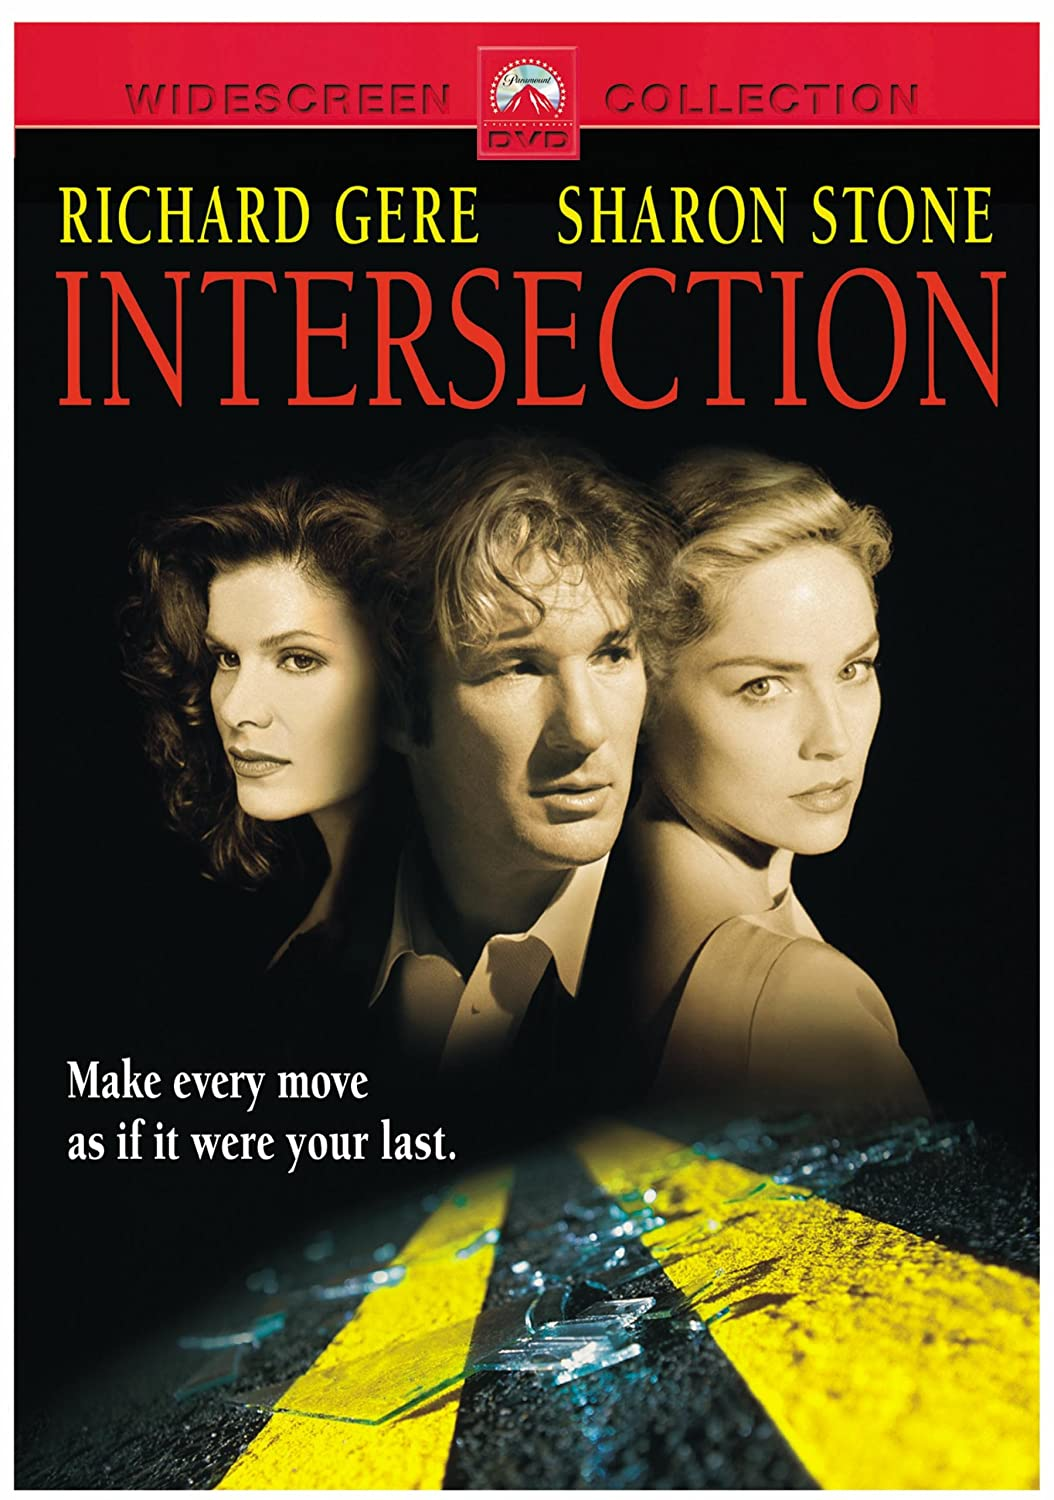 Amazon.com: Intersection: Richard Gere, Lolita Davidovich, Sharon Stone,  Martin Landau, Scott Bellis, Jenny Morrison, Denalda Williams, David Selby,  ...